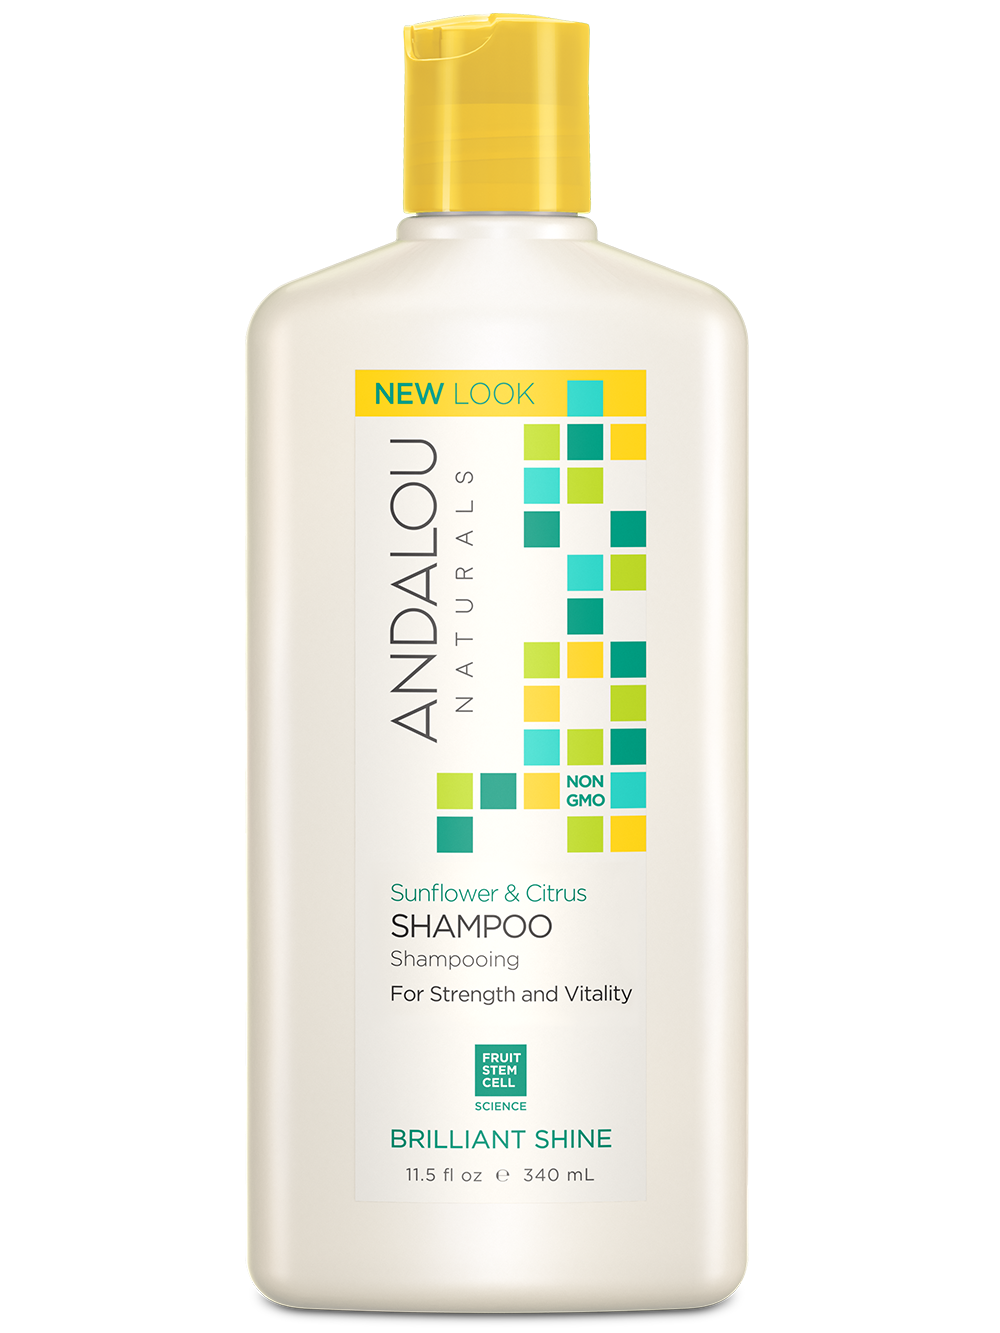 Andalou Naturals Sunflower & Citrus Brilliant Shine Shampoo